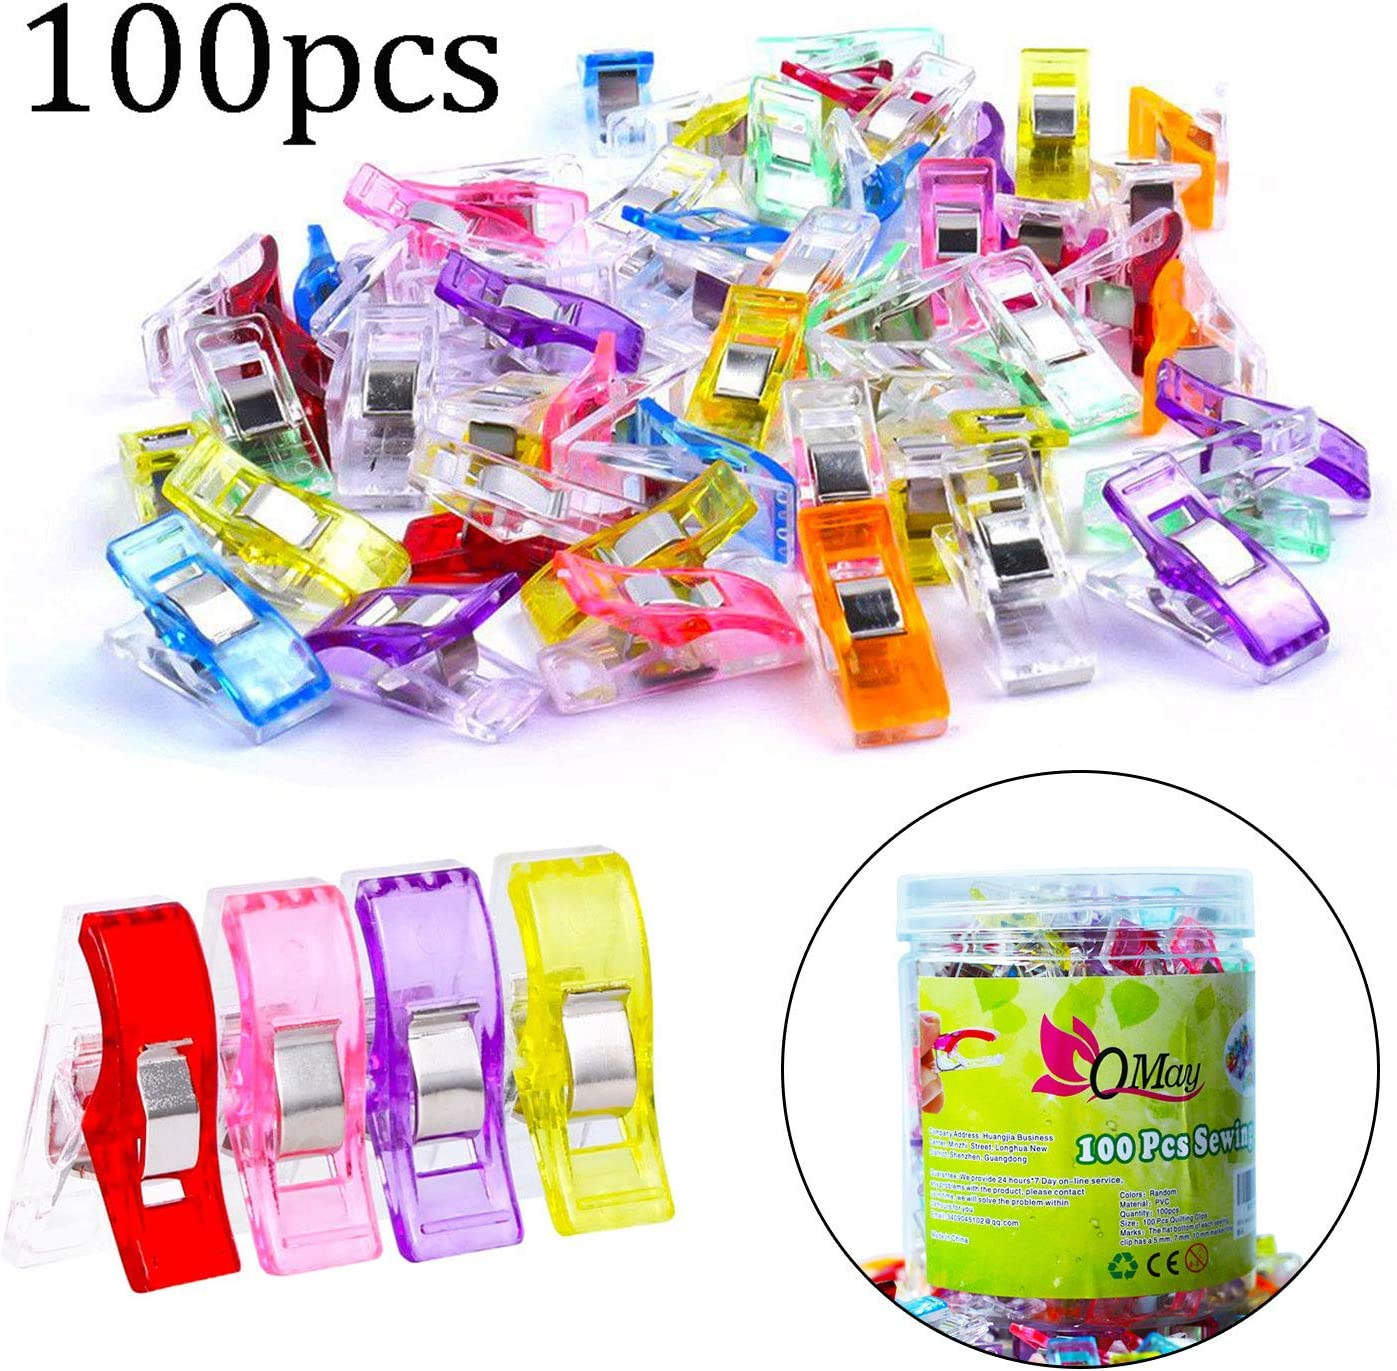 100 PCS Colorful Multi-Purpose Craft Clips Sewing Quilting Crafts Wonder Clips